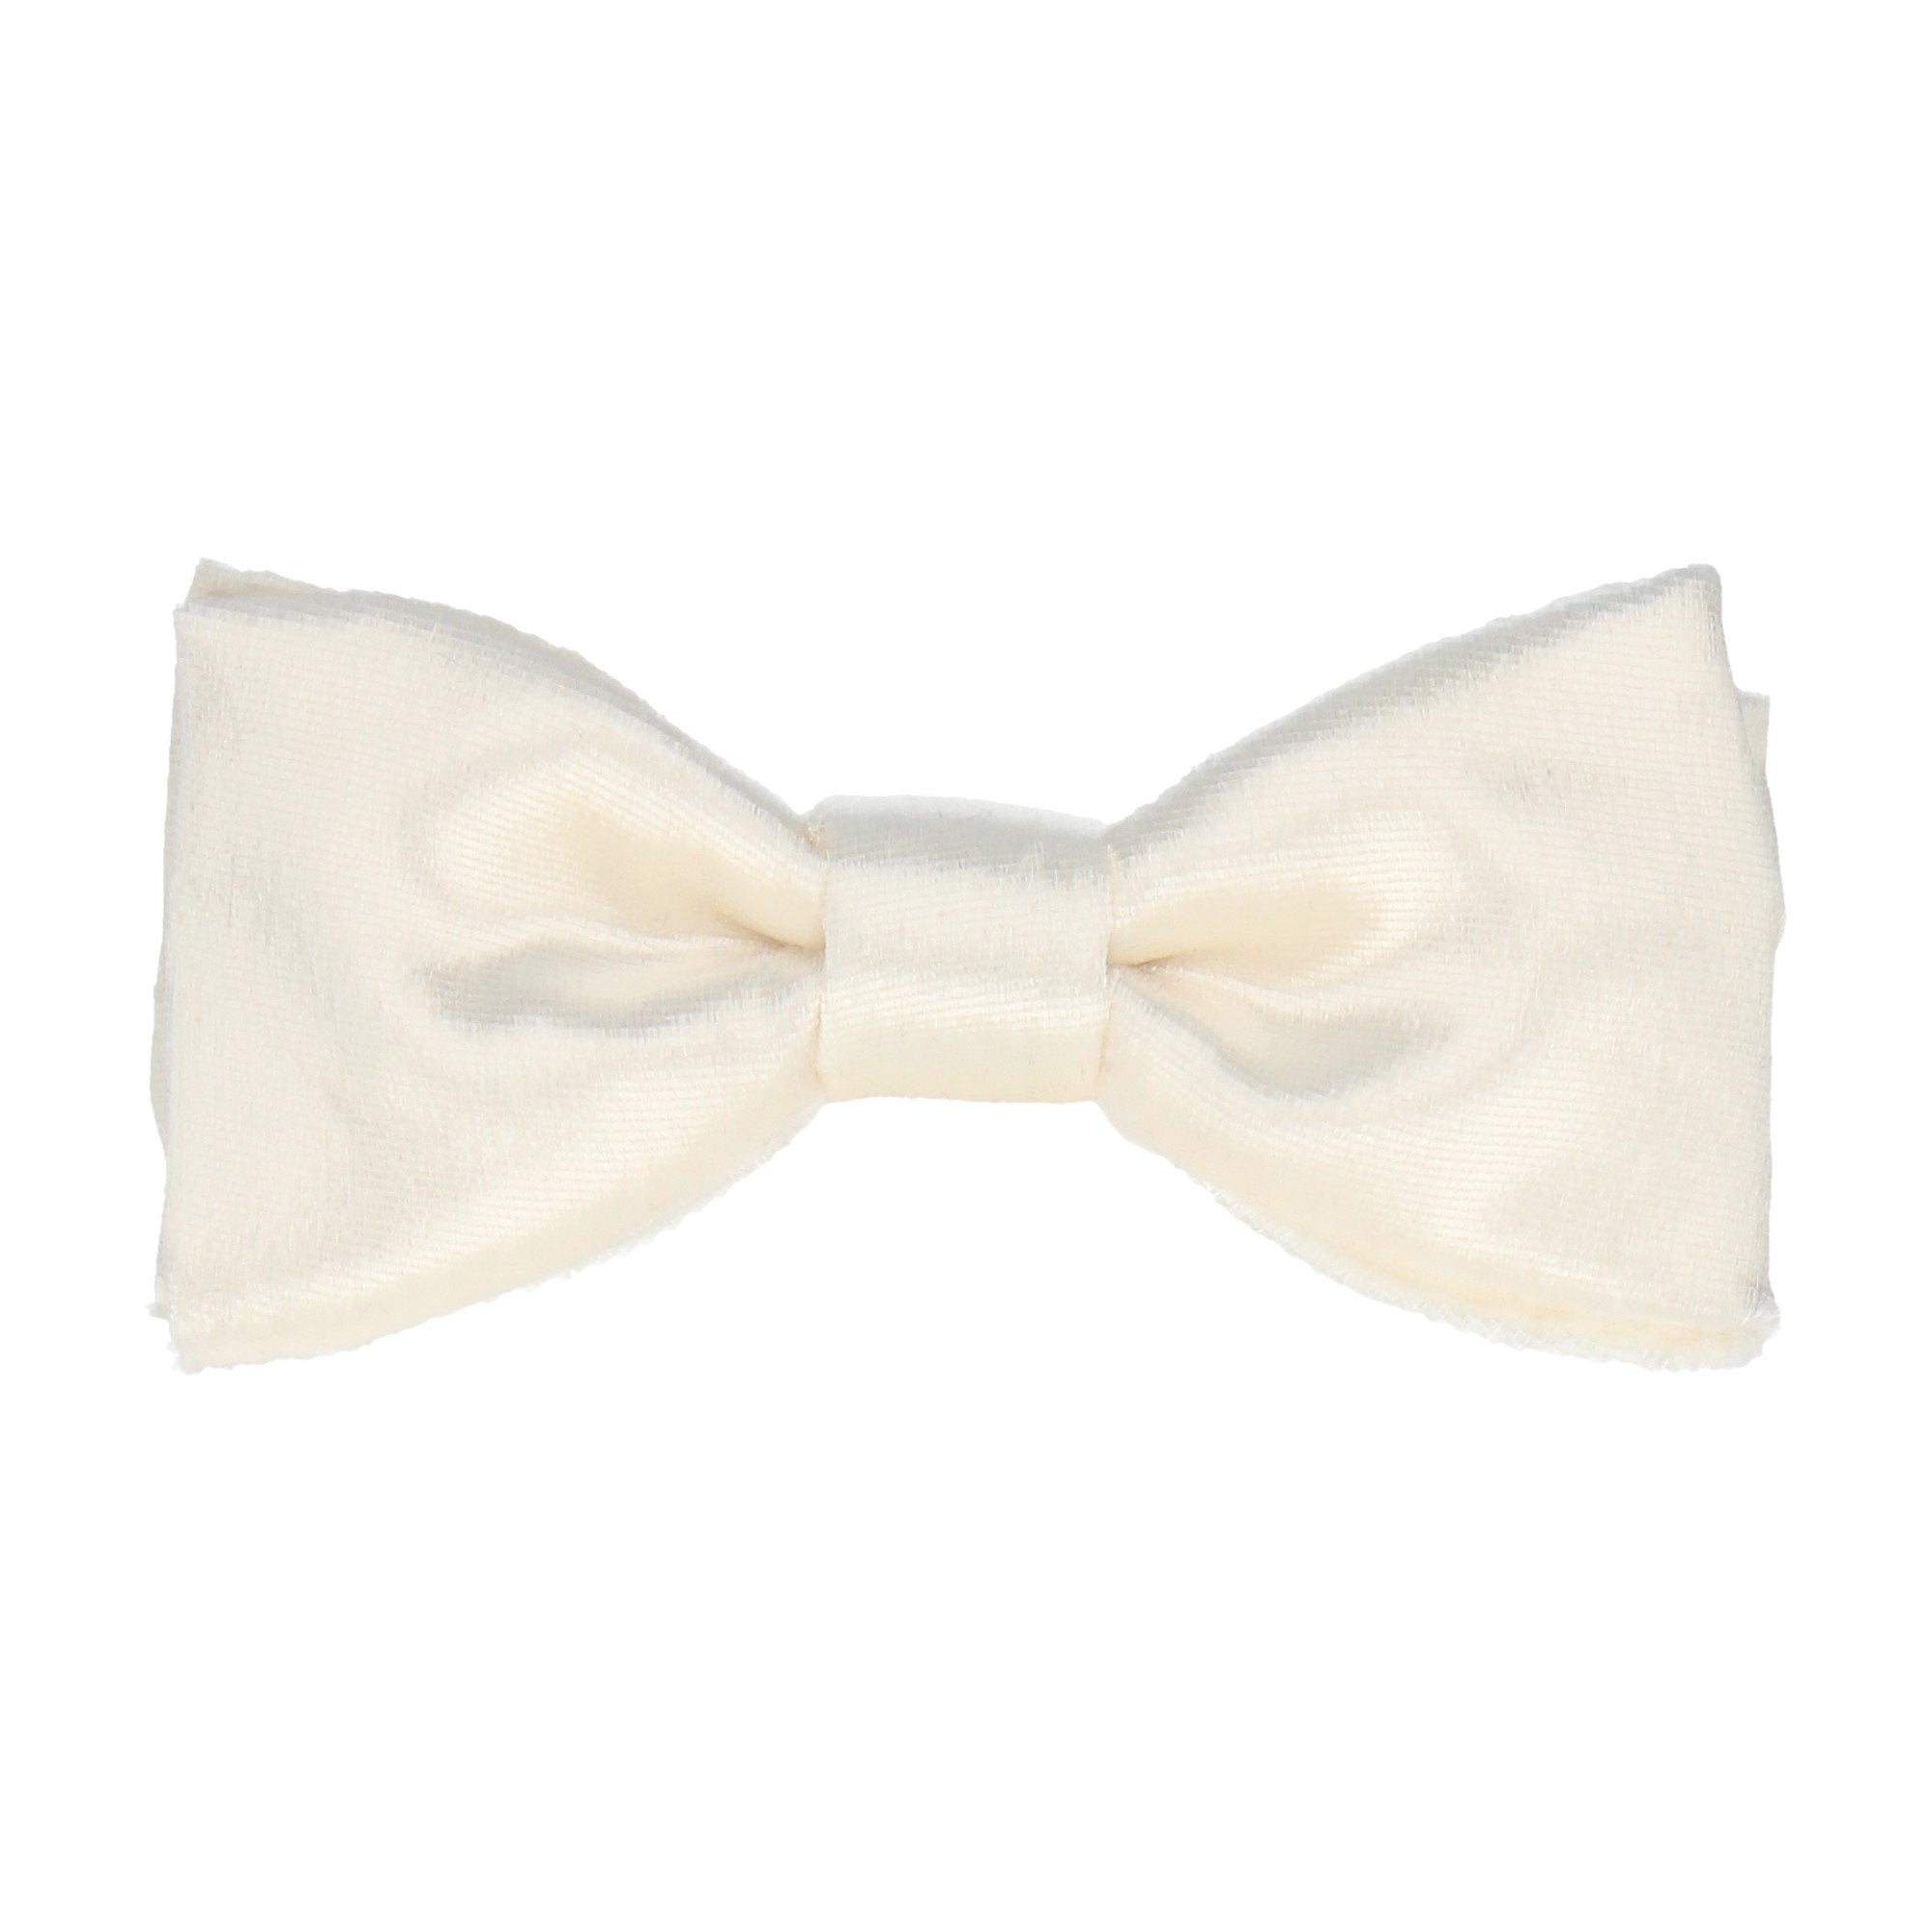 Silk Velvet in Ivory Bow Tie